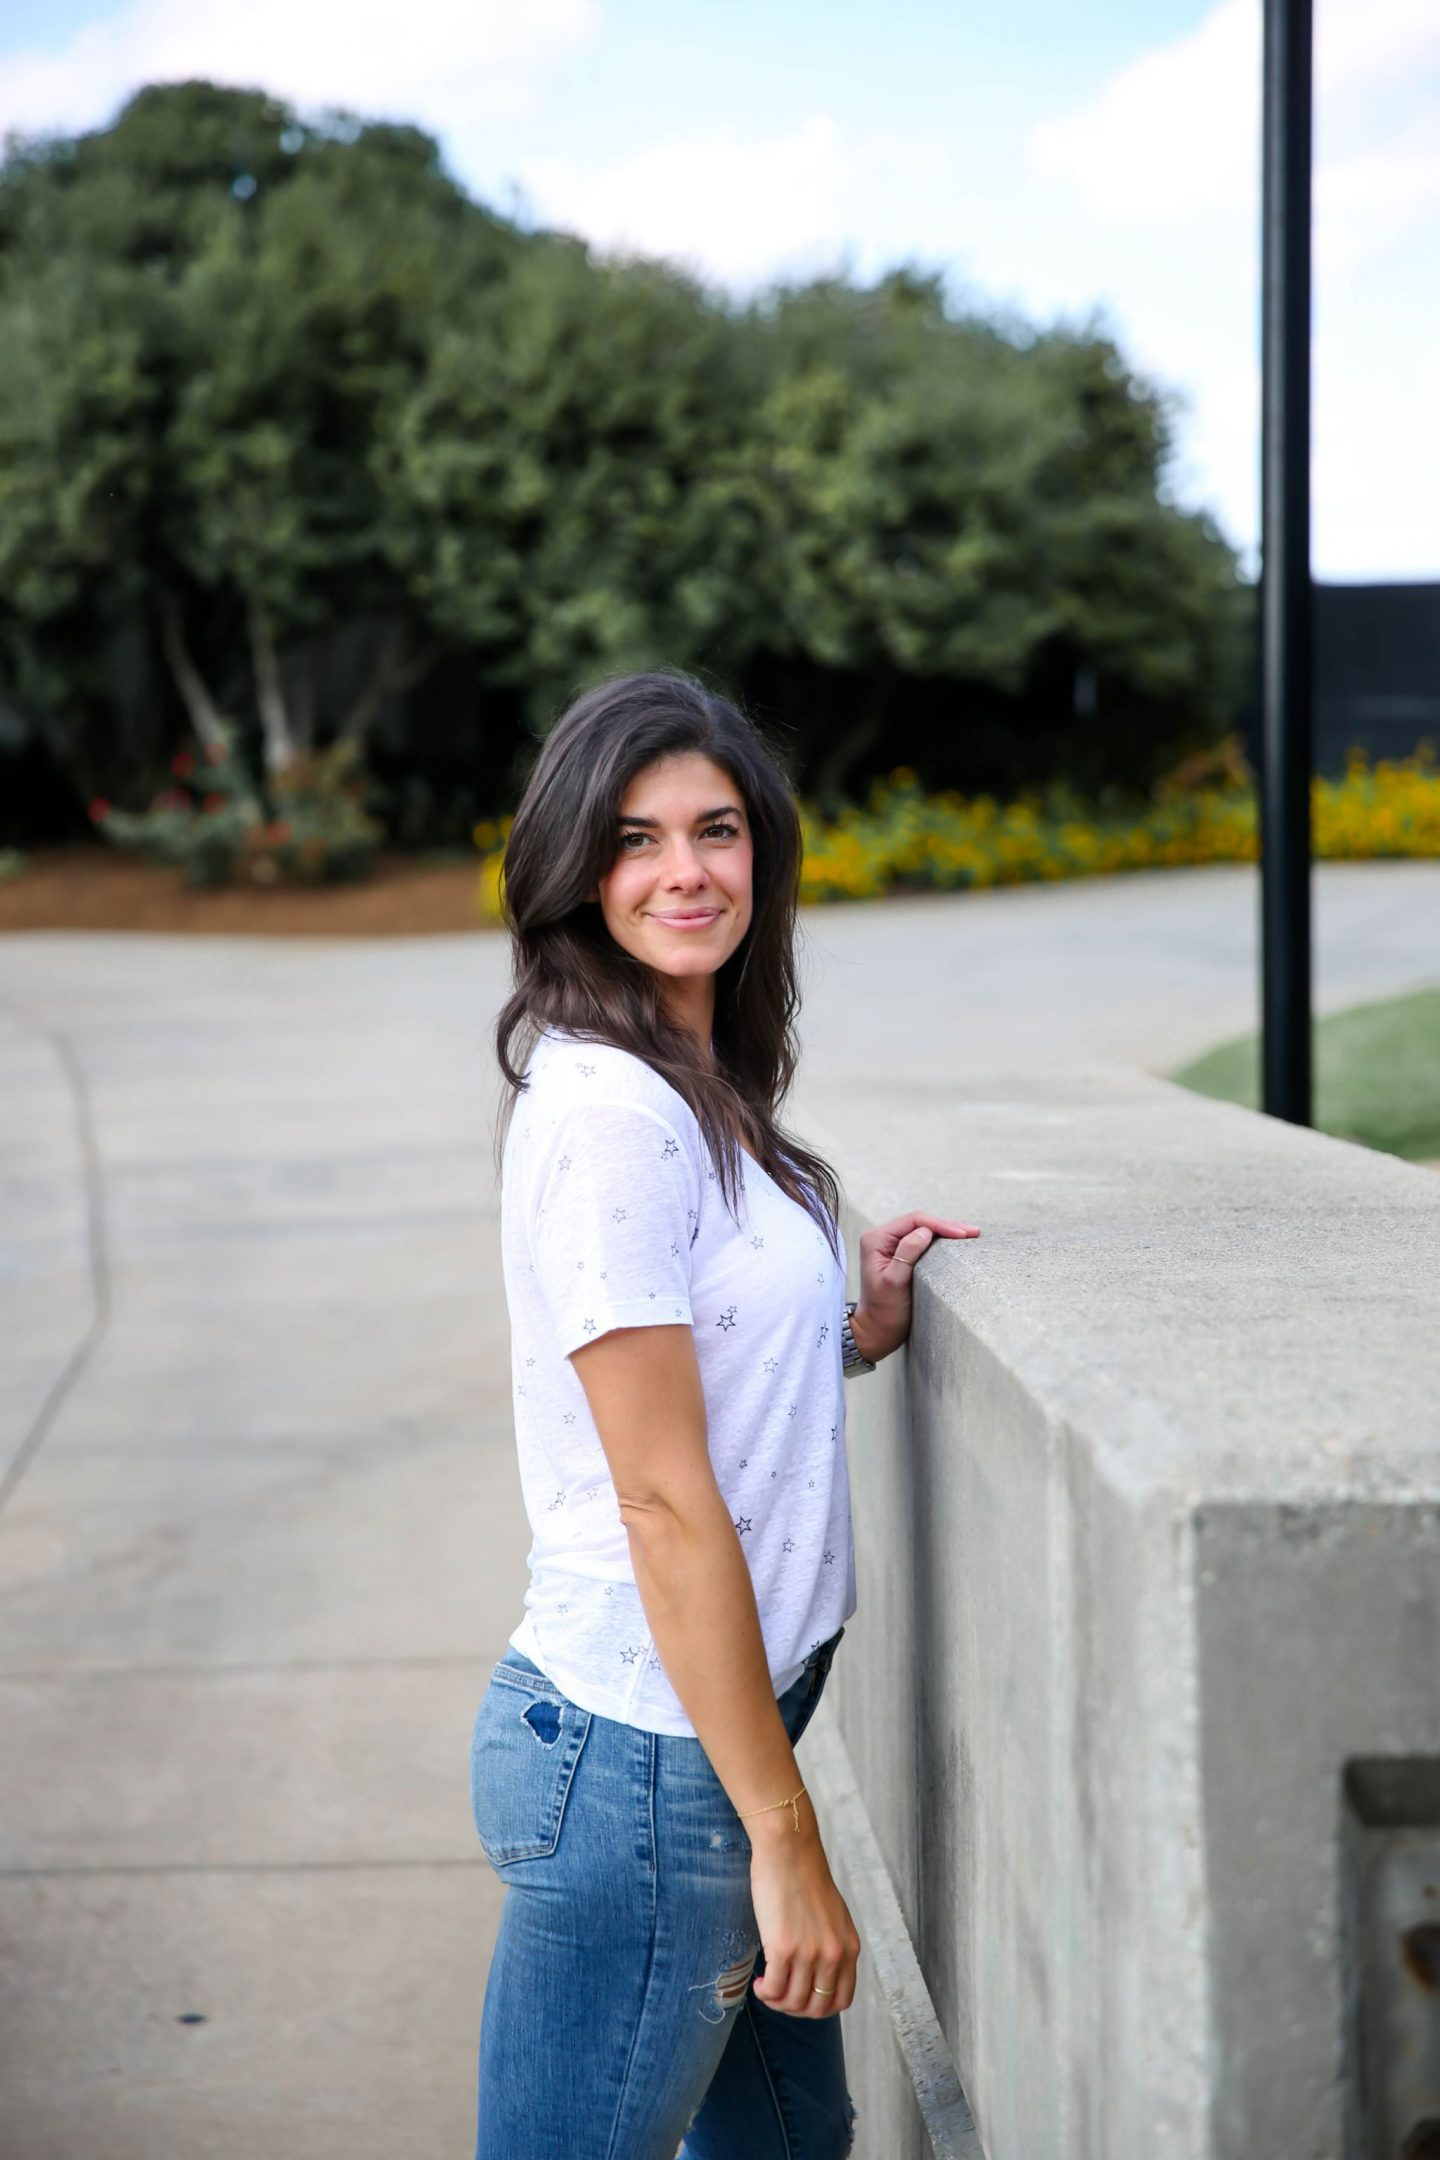 star v-neck tee - Lauren schwaiger style blog